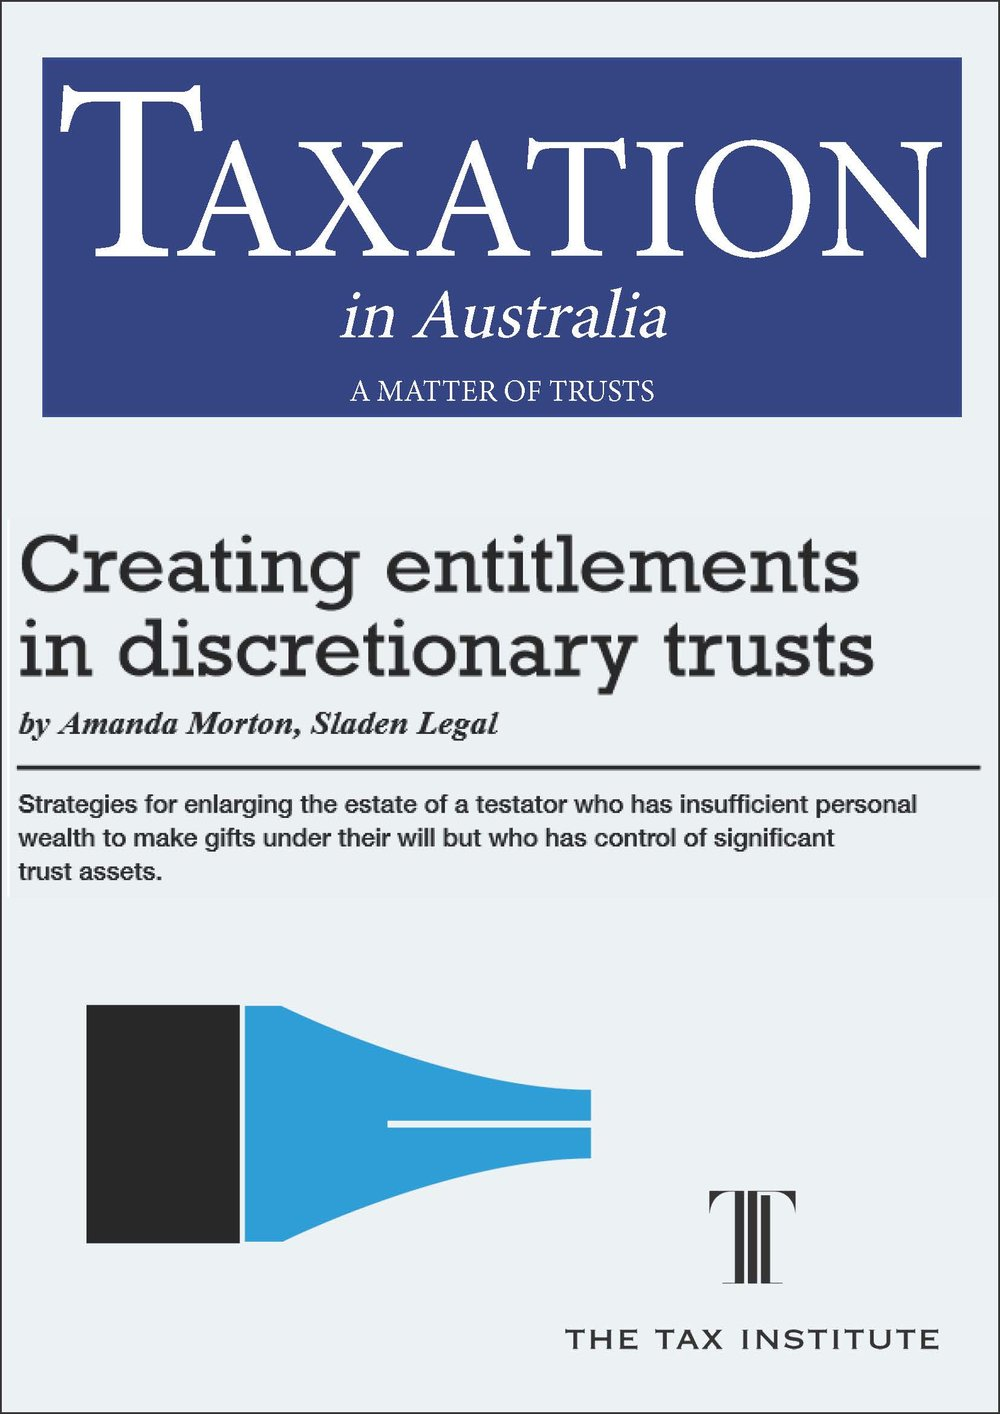 Creating entitlements in discretionary trusts 29 June 2016